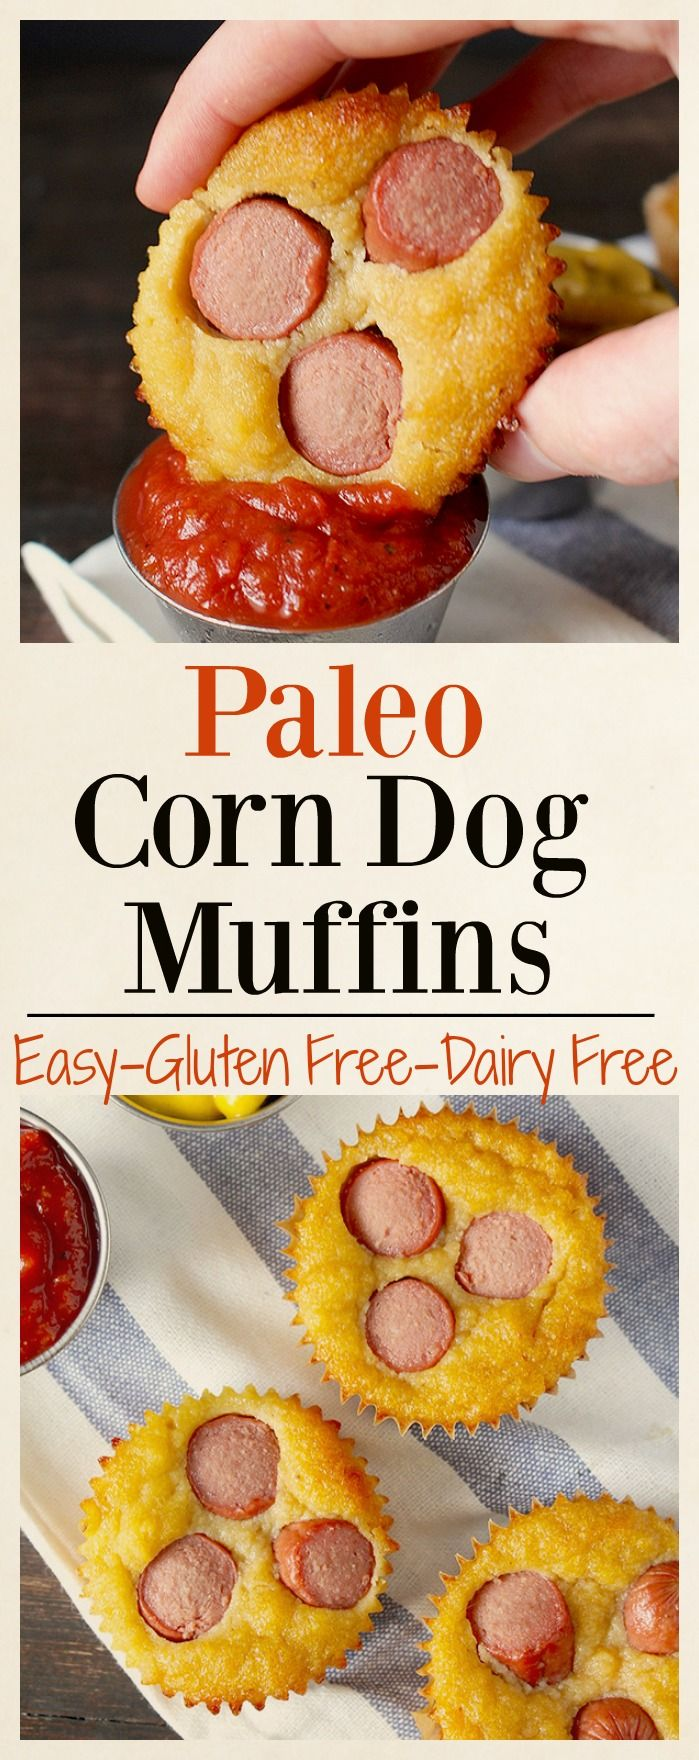 Paleo Corn Dog Muffins- 5 uncured hotdogs (Applegate); 1/2 cup almond flour; 1/2 cup coconut flour; 2 tablespoons ghee, melted; 2 tablespoons coconut oil, melted; 2 tablespoons honey; 1/2 cup cashew milk, or other non-dairy milk; 3 eggs; ¼ teaspoon salt; 1/2 teaspoon baking soda